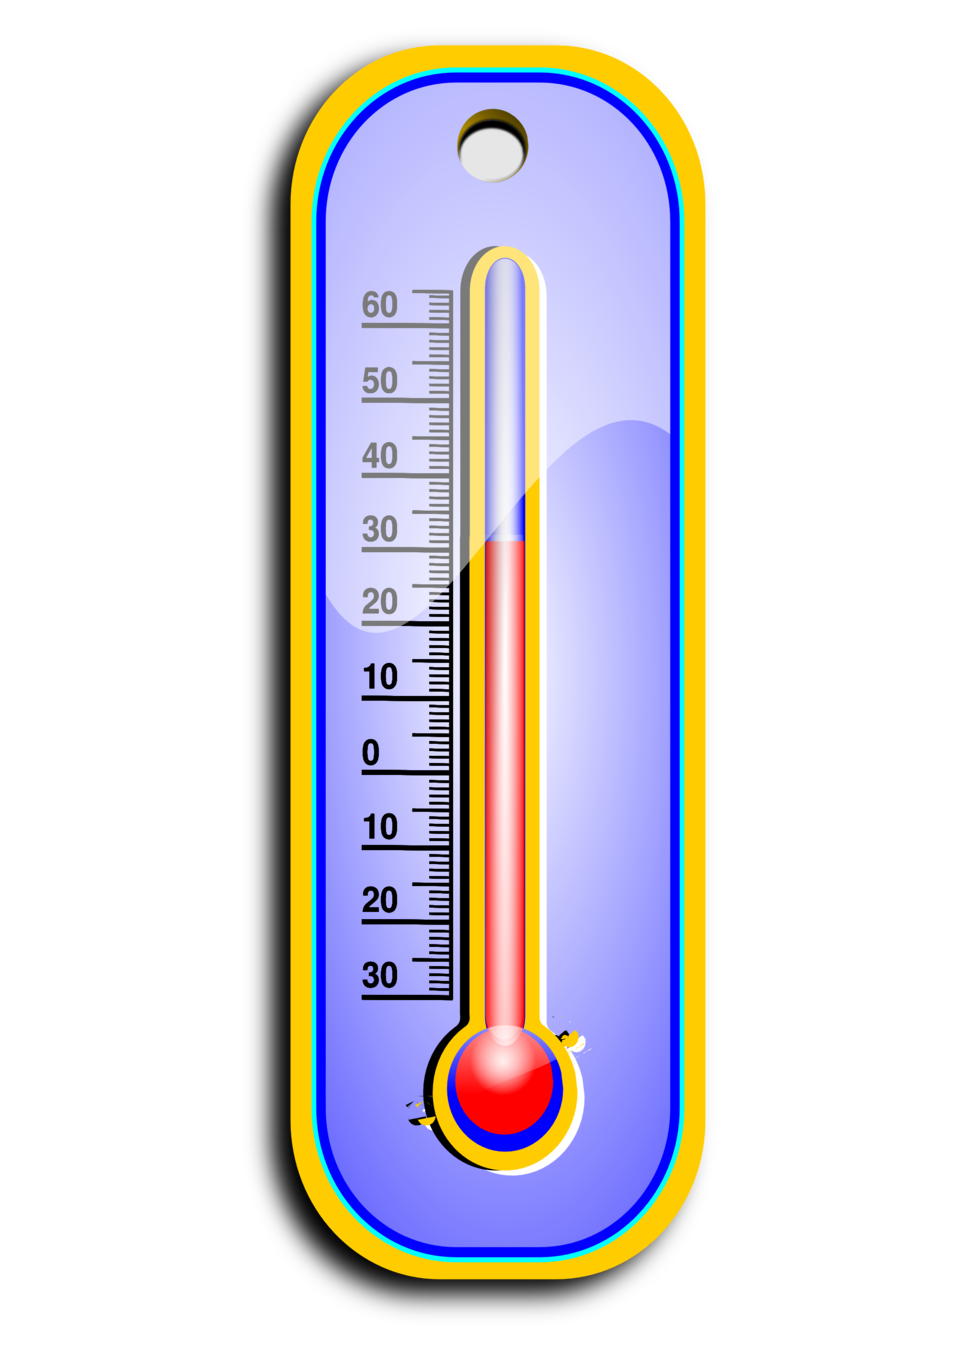 Clipart thermometer simple thermometer. Public domain clip art